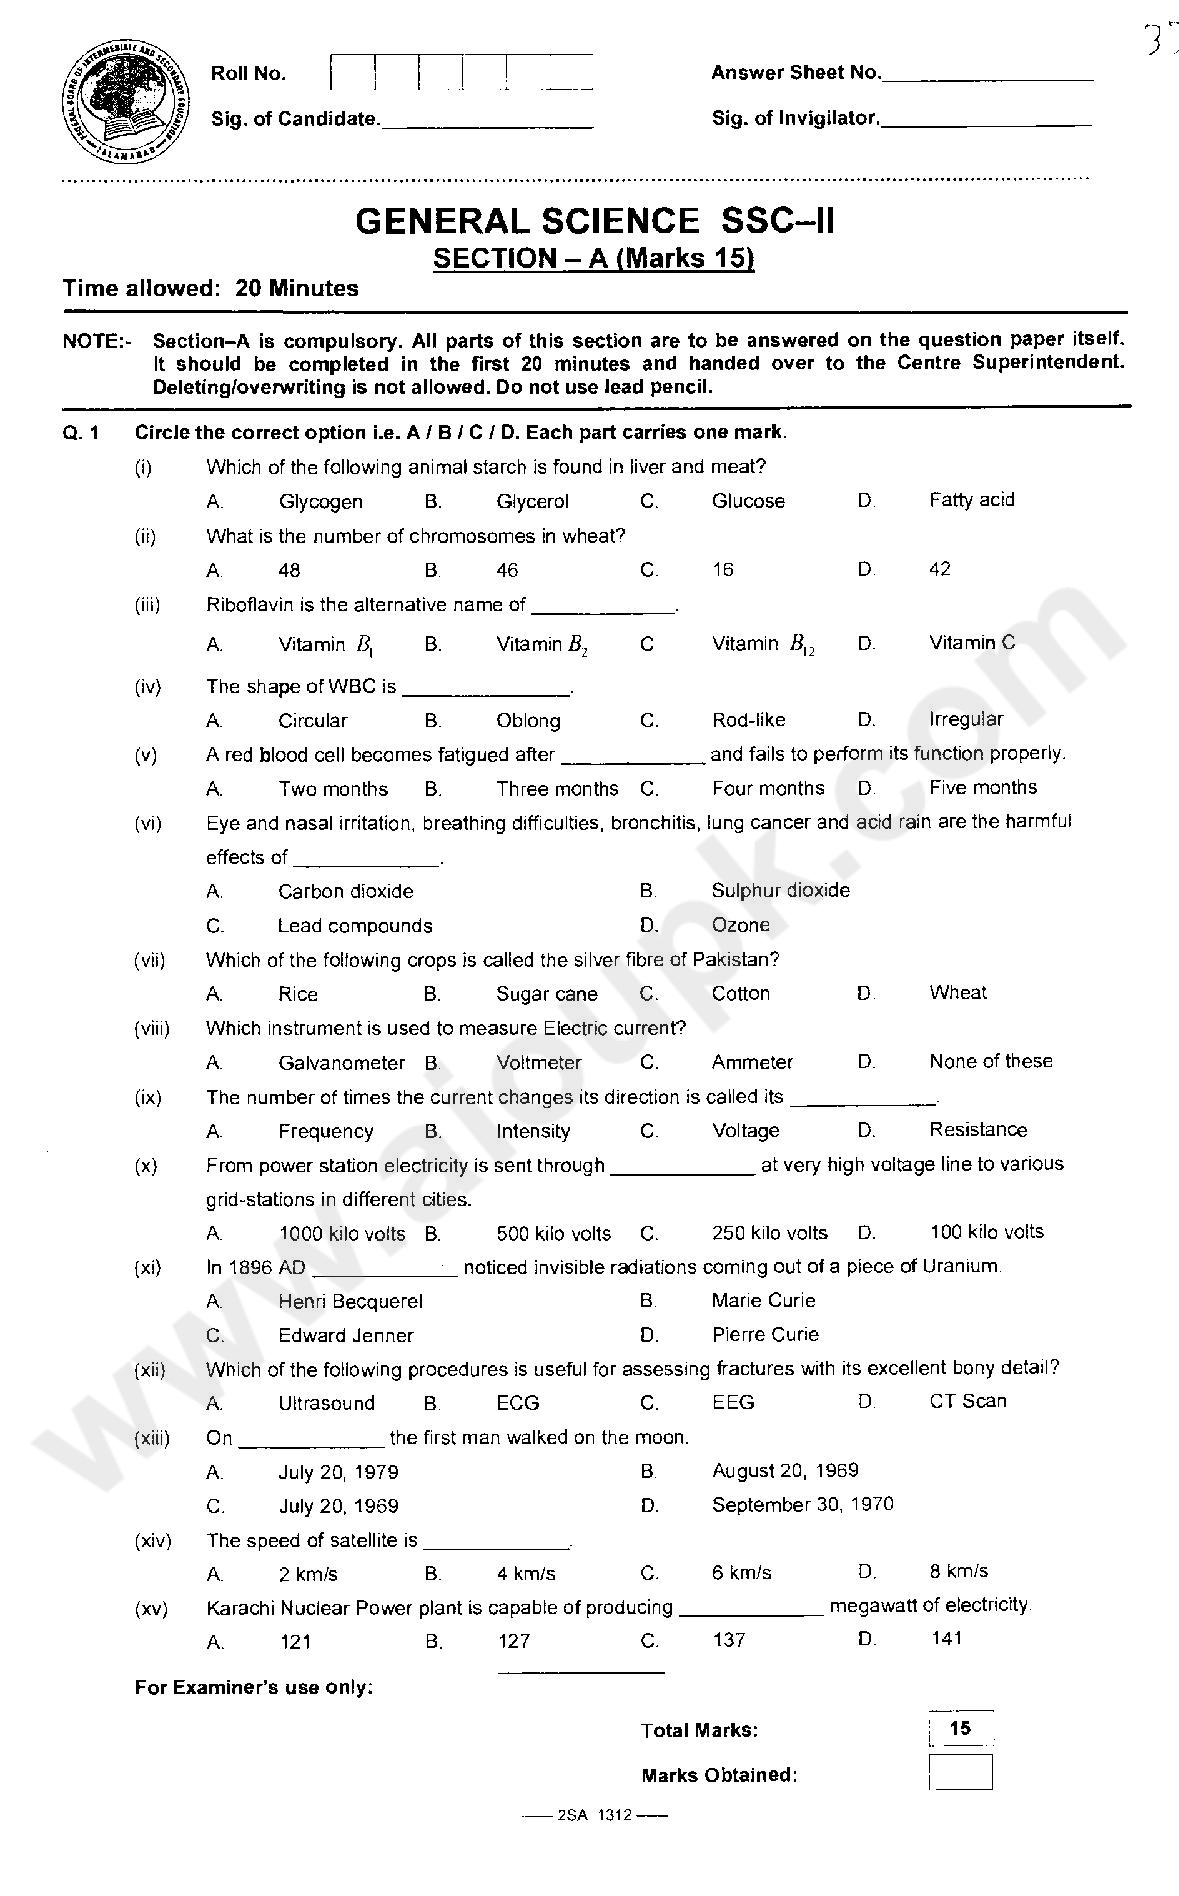 cbse sample papers 2011 class x science 1st term